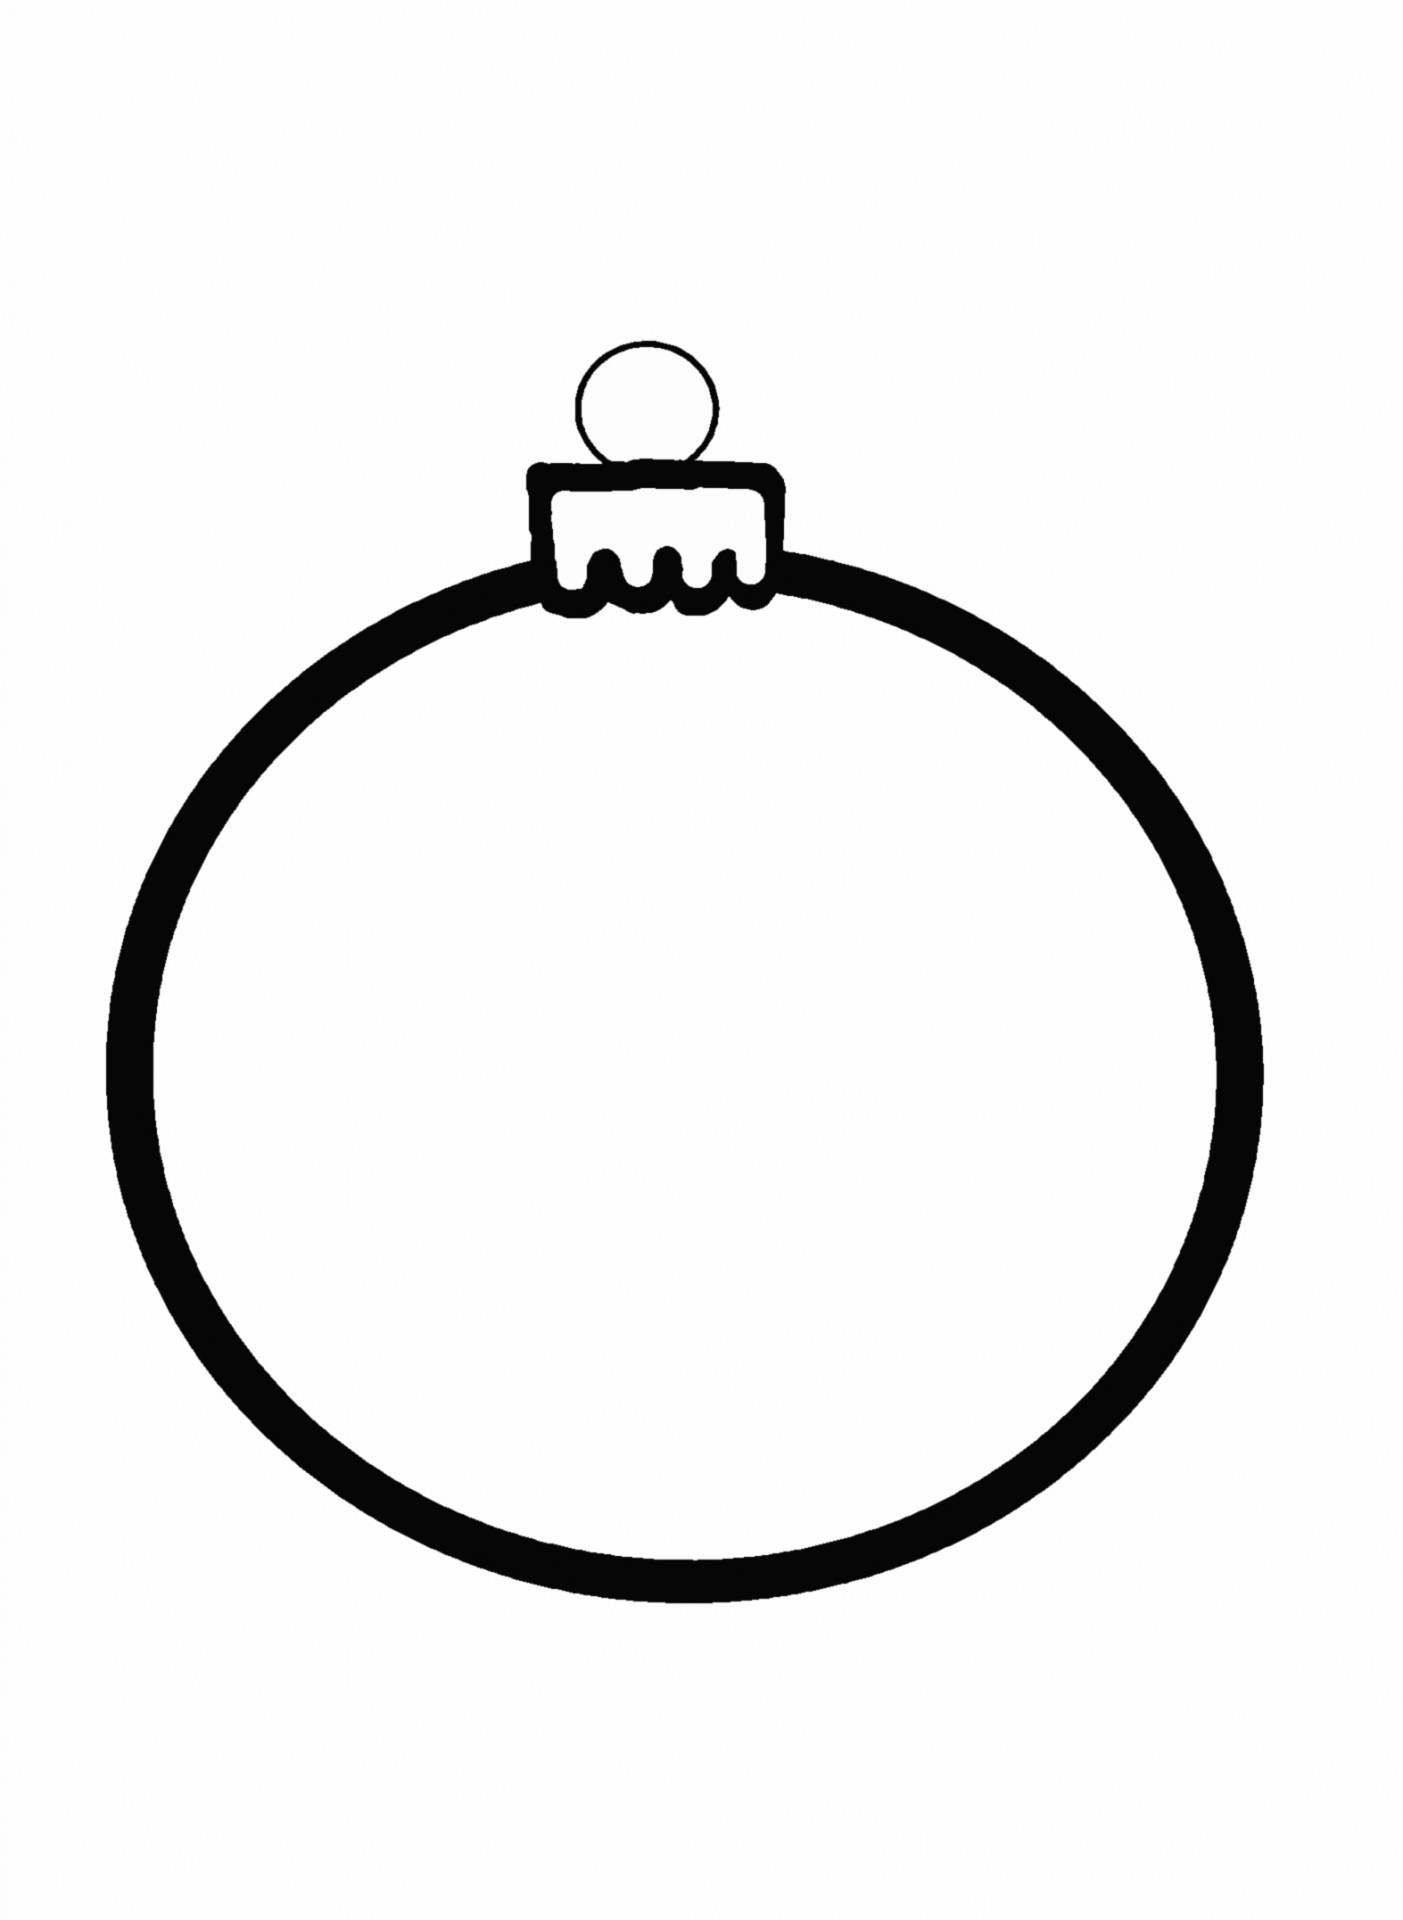 Christmas Ornament Clip Art Black And White Christmas Ornament Outline Search Results Calendar 2015